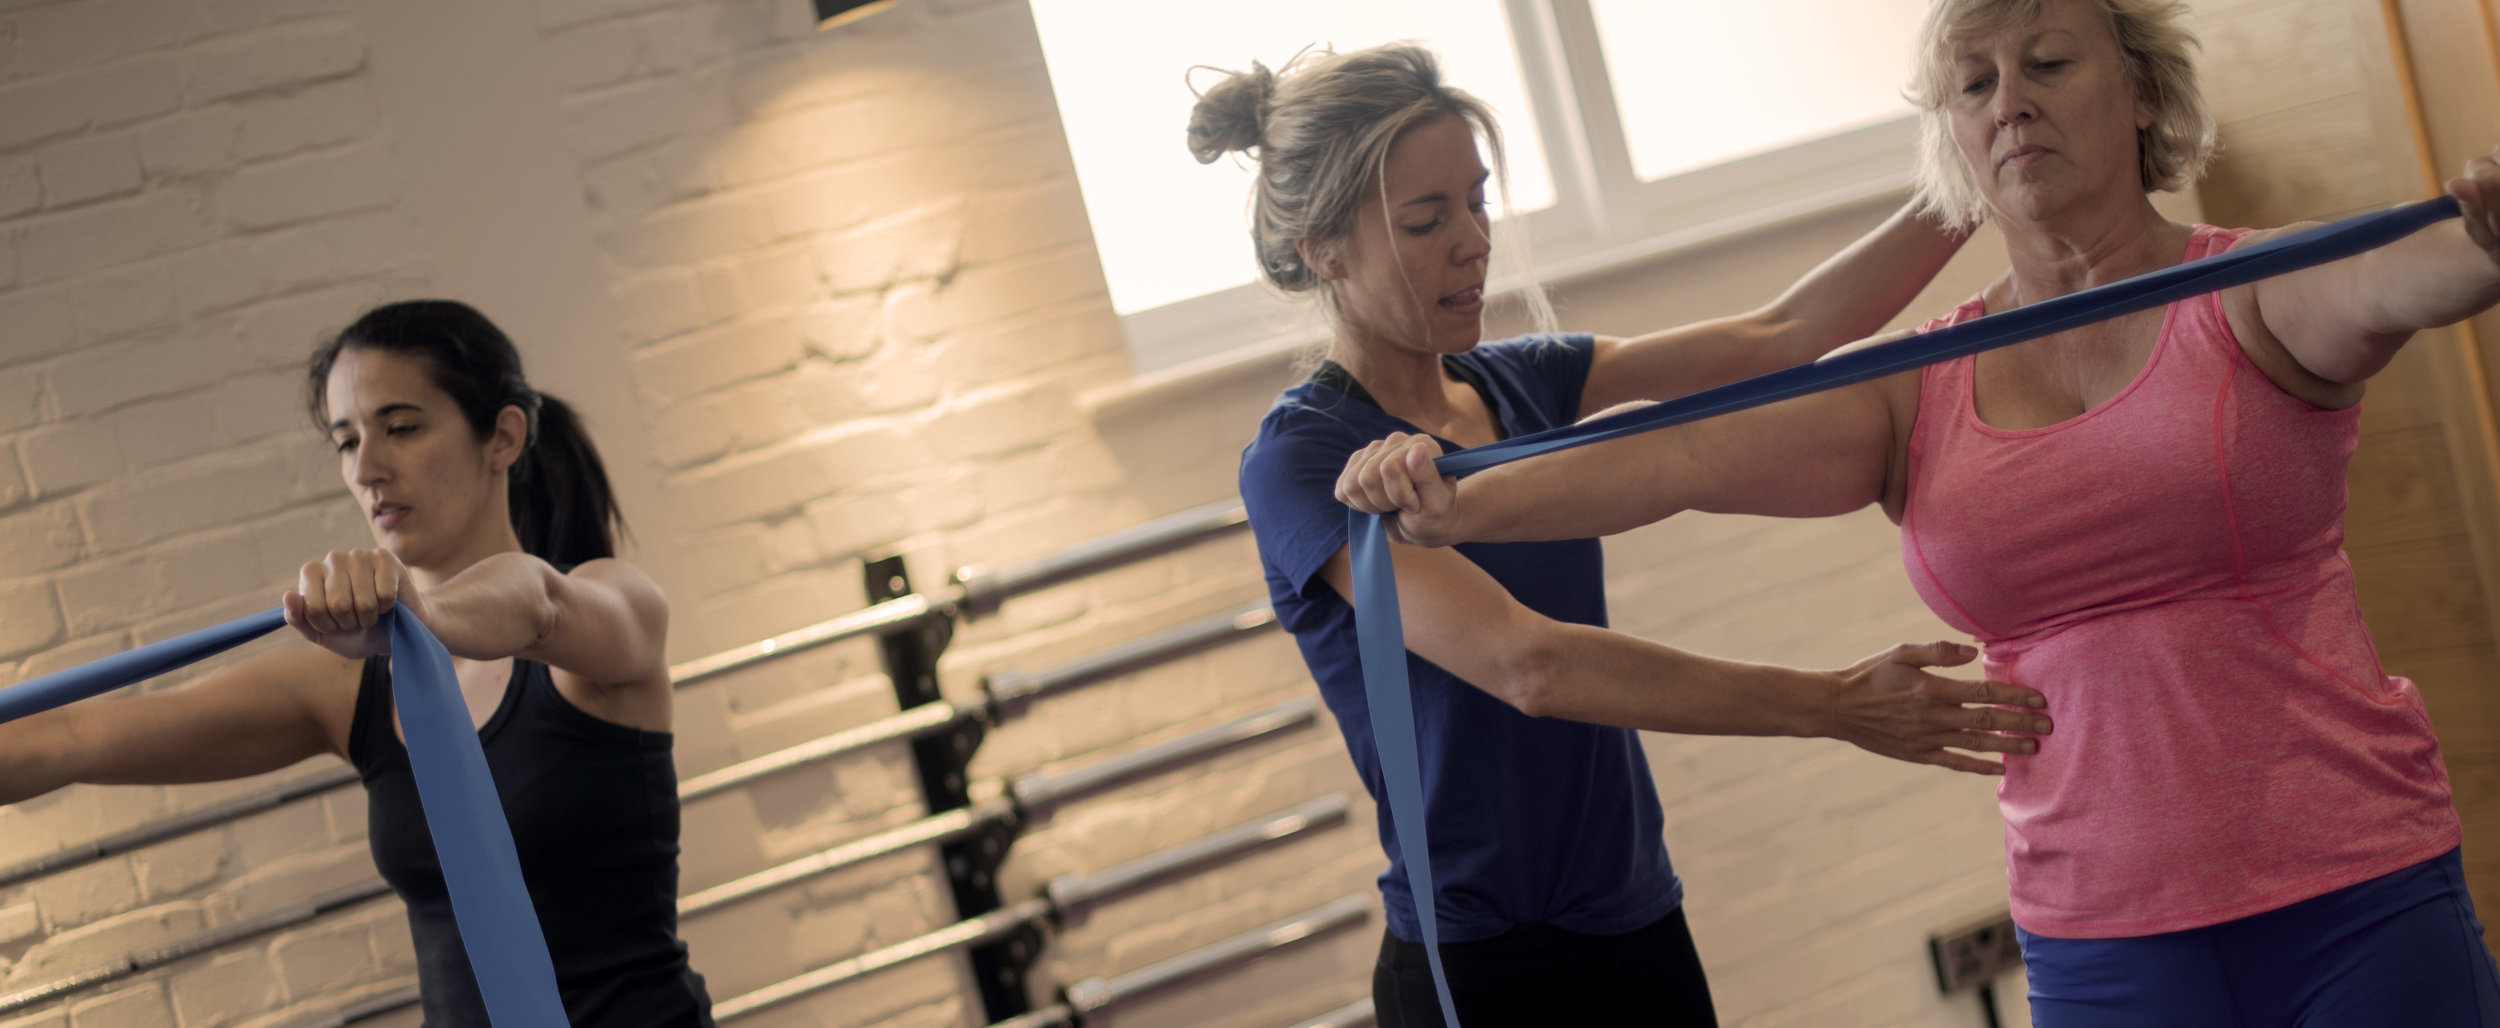 Holistic Core and Restore Course - Exercises